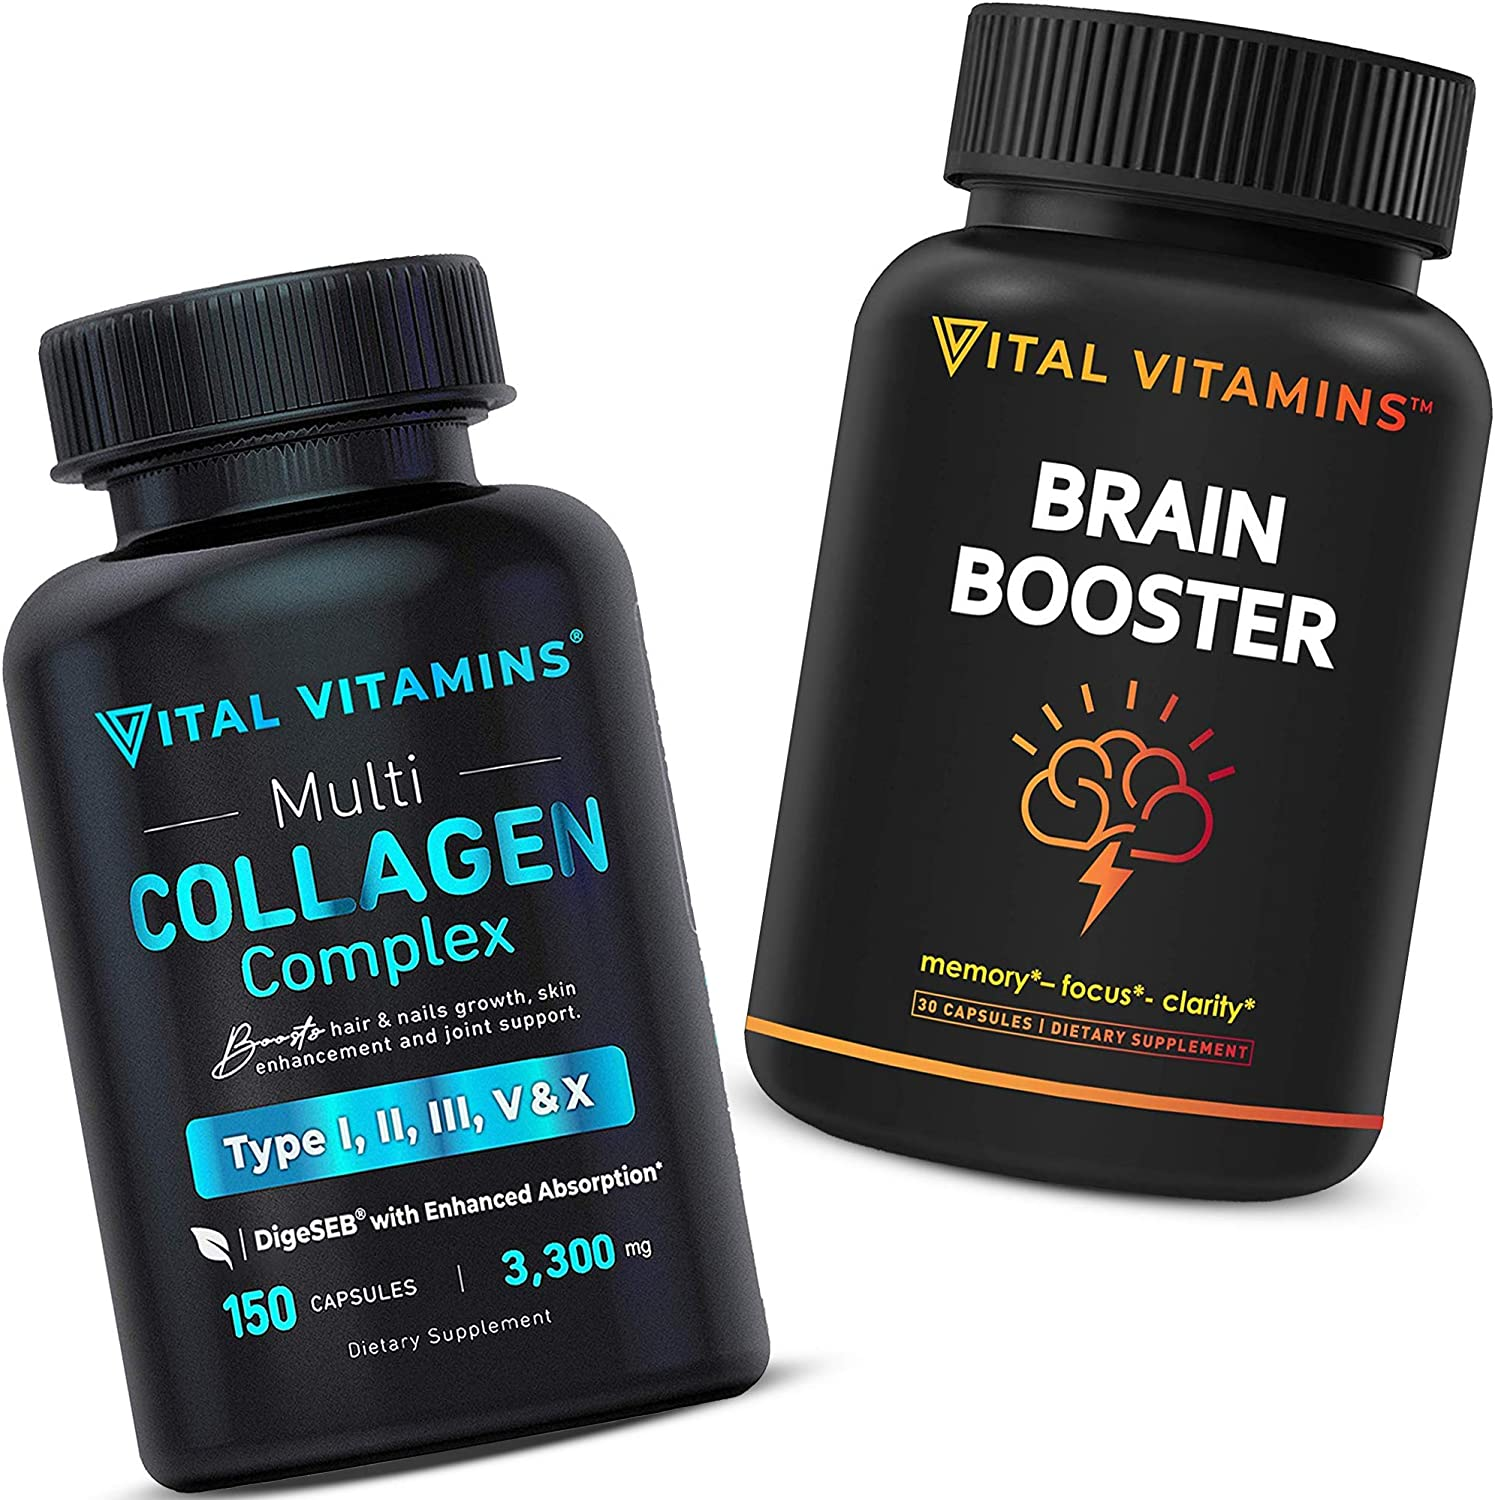 Brain Supplement Nootropics Booster and Multi Collagen Pills (Types I,II,III,V,X) Bundle